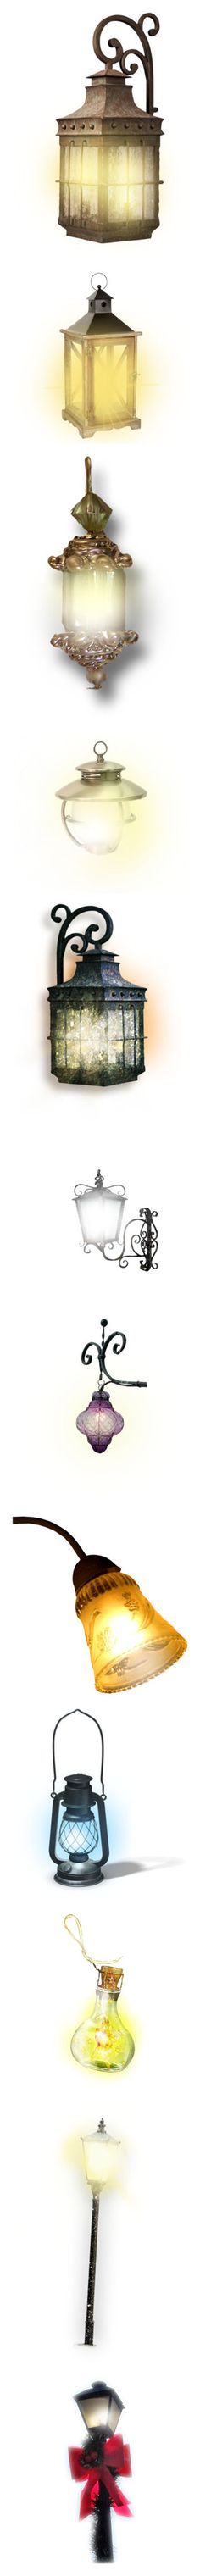 """""""Lights"""" by asia-12 ❤ liked on Polyvore featuring halloween, lamps, lanterns, lighting, backgrounds, lantern, candles, effects, fillers and lights"""